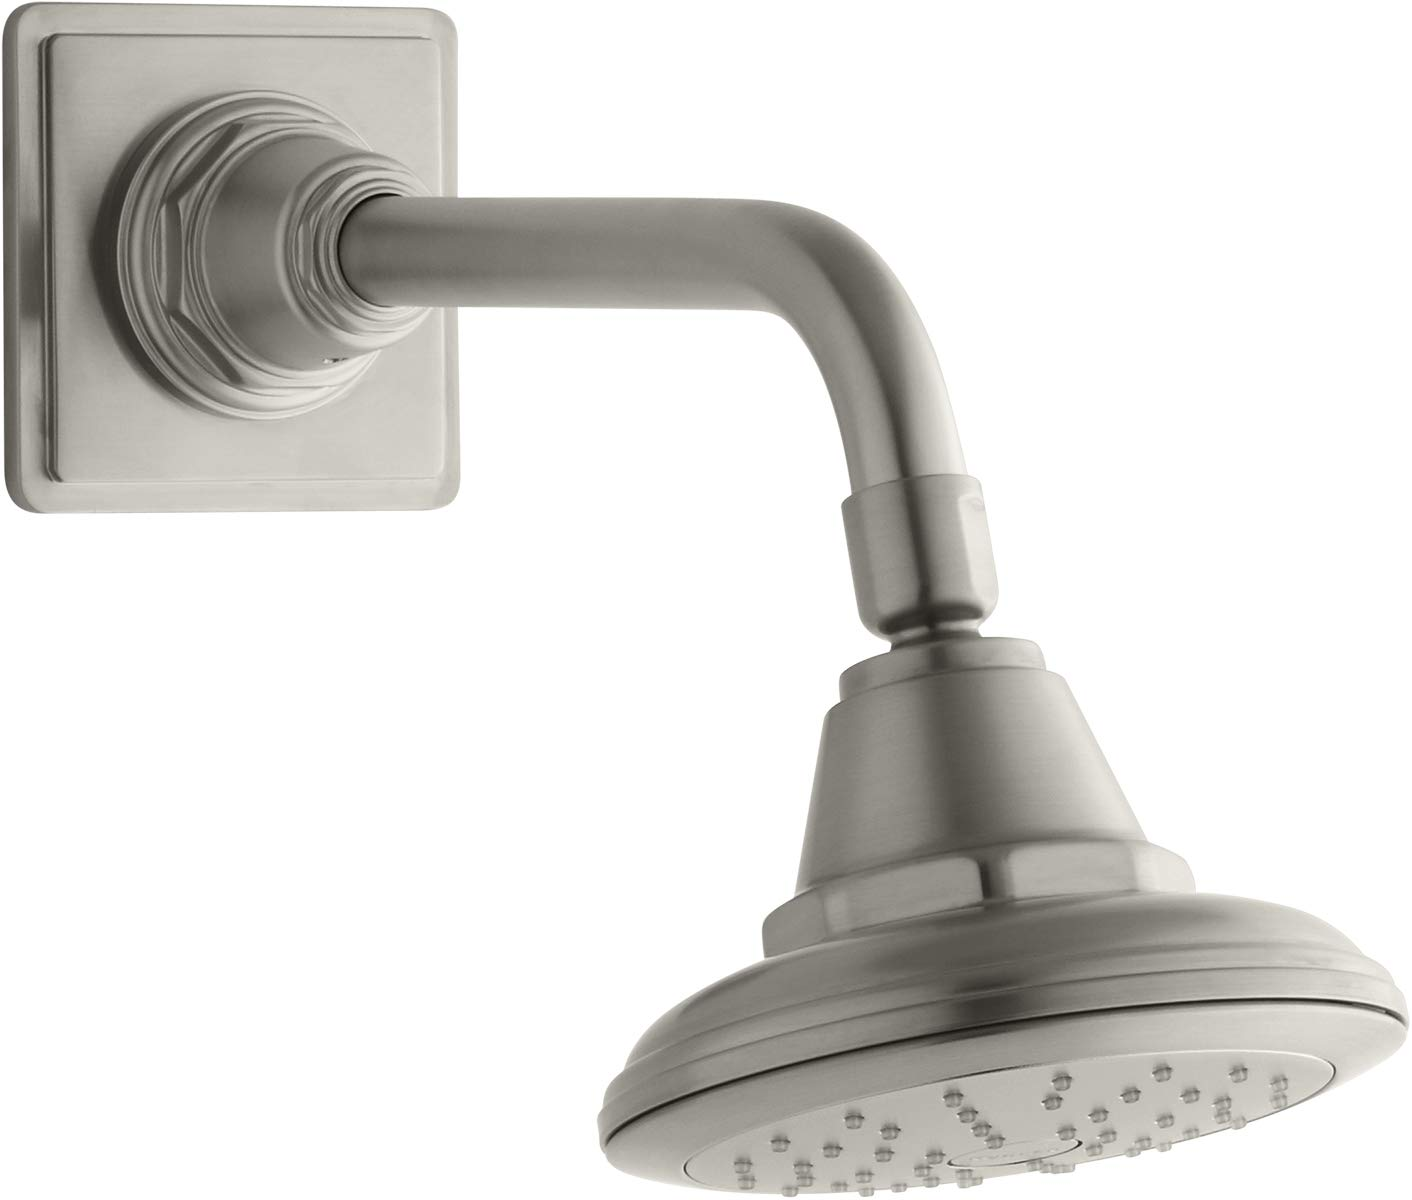 Polished Chrome KOHLER 45417-CP Pinstripe Single Function Wall Mount Showerhead with Katalyst Air Induction Spray 2.0 GPM